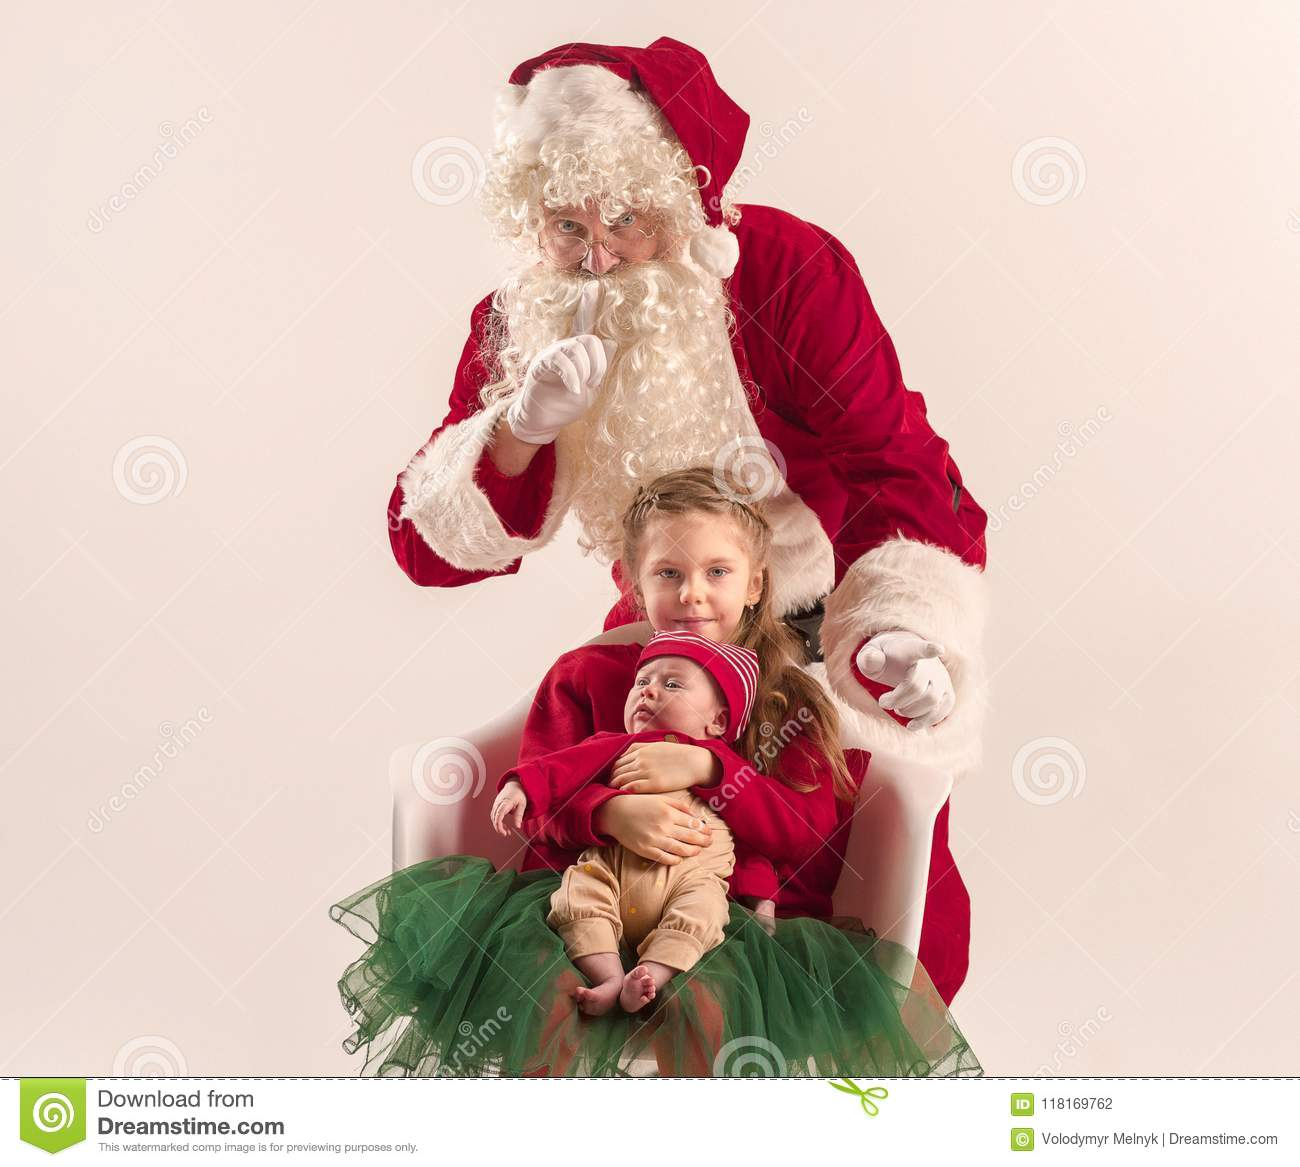 759663739 Christmas Portrait Of Cute Little Newborn Baby Girl